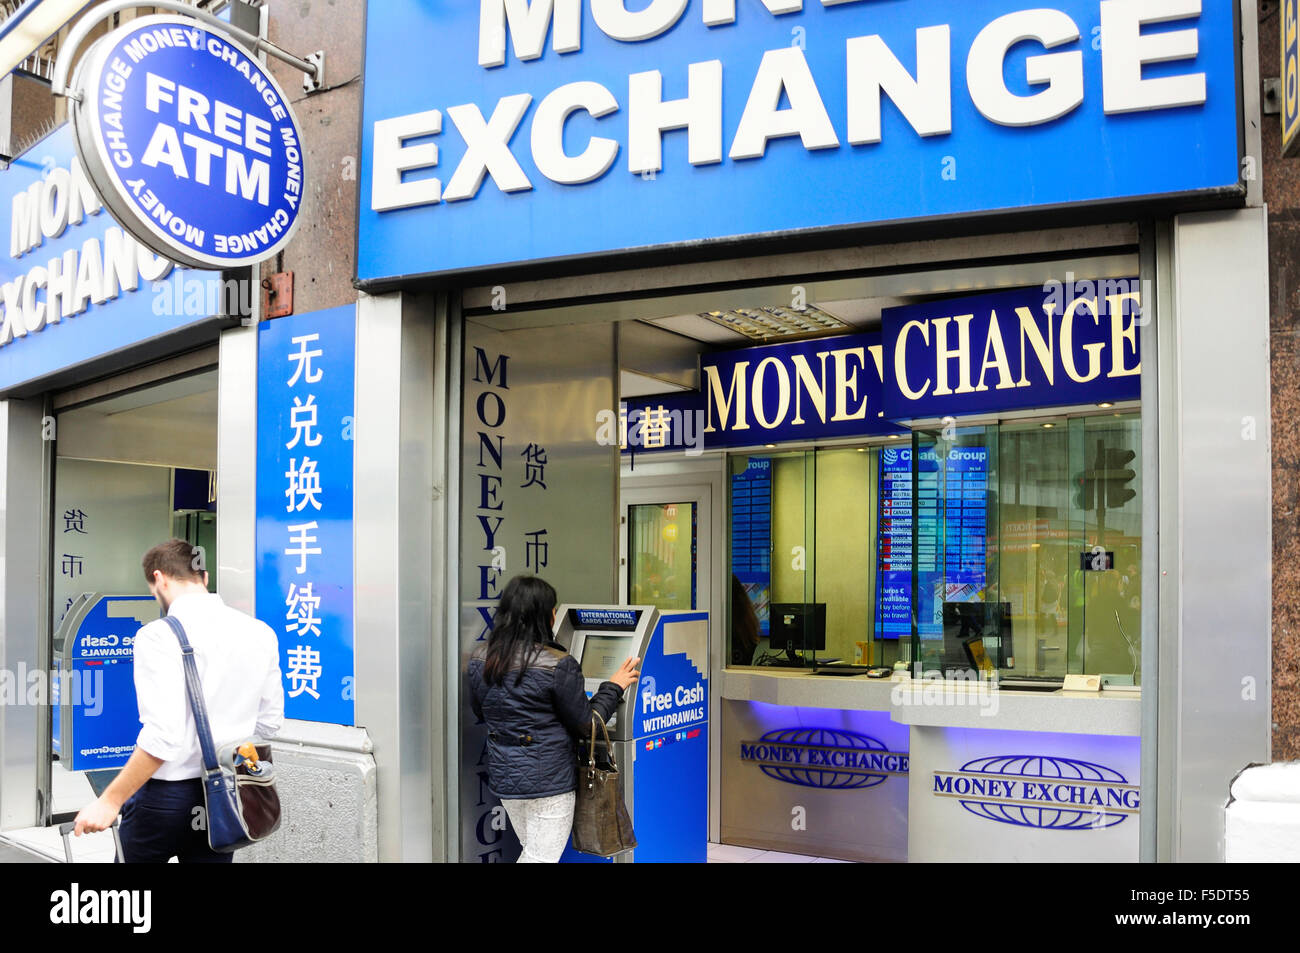 ATM and Money Exchange shop, Leicester Square, West End, City of Westminster, London, England, United Kingdom - Stock Image